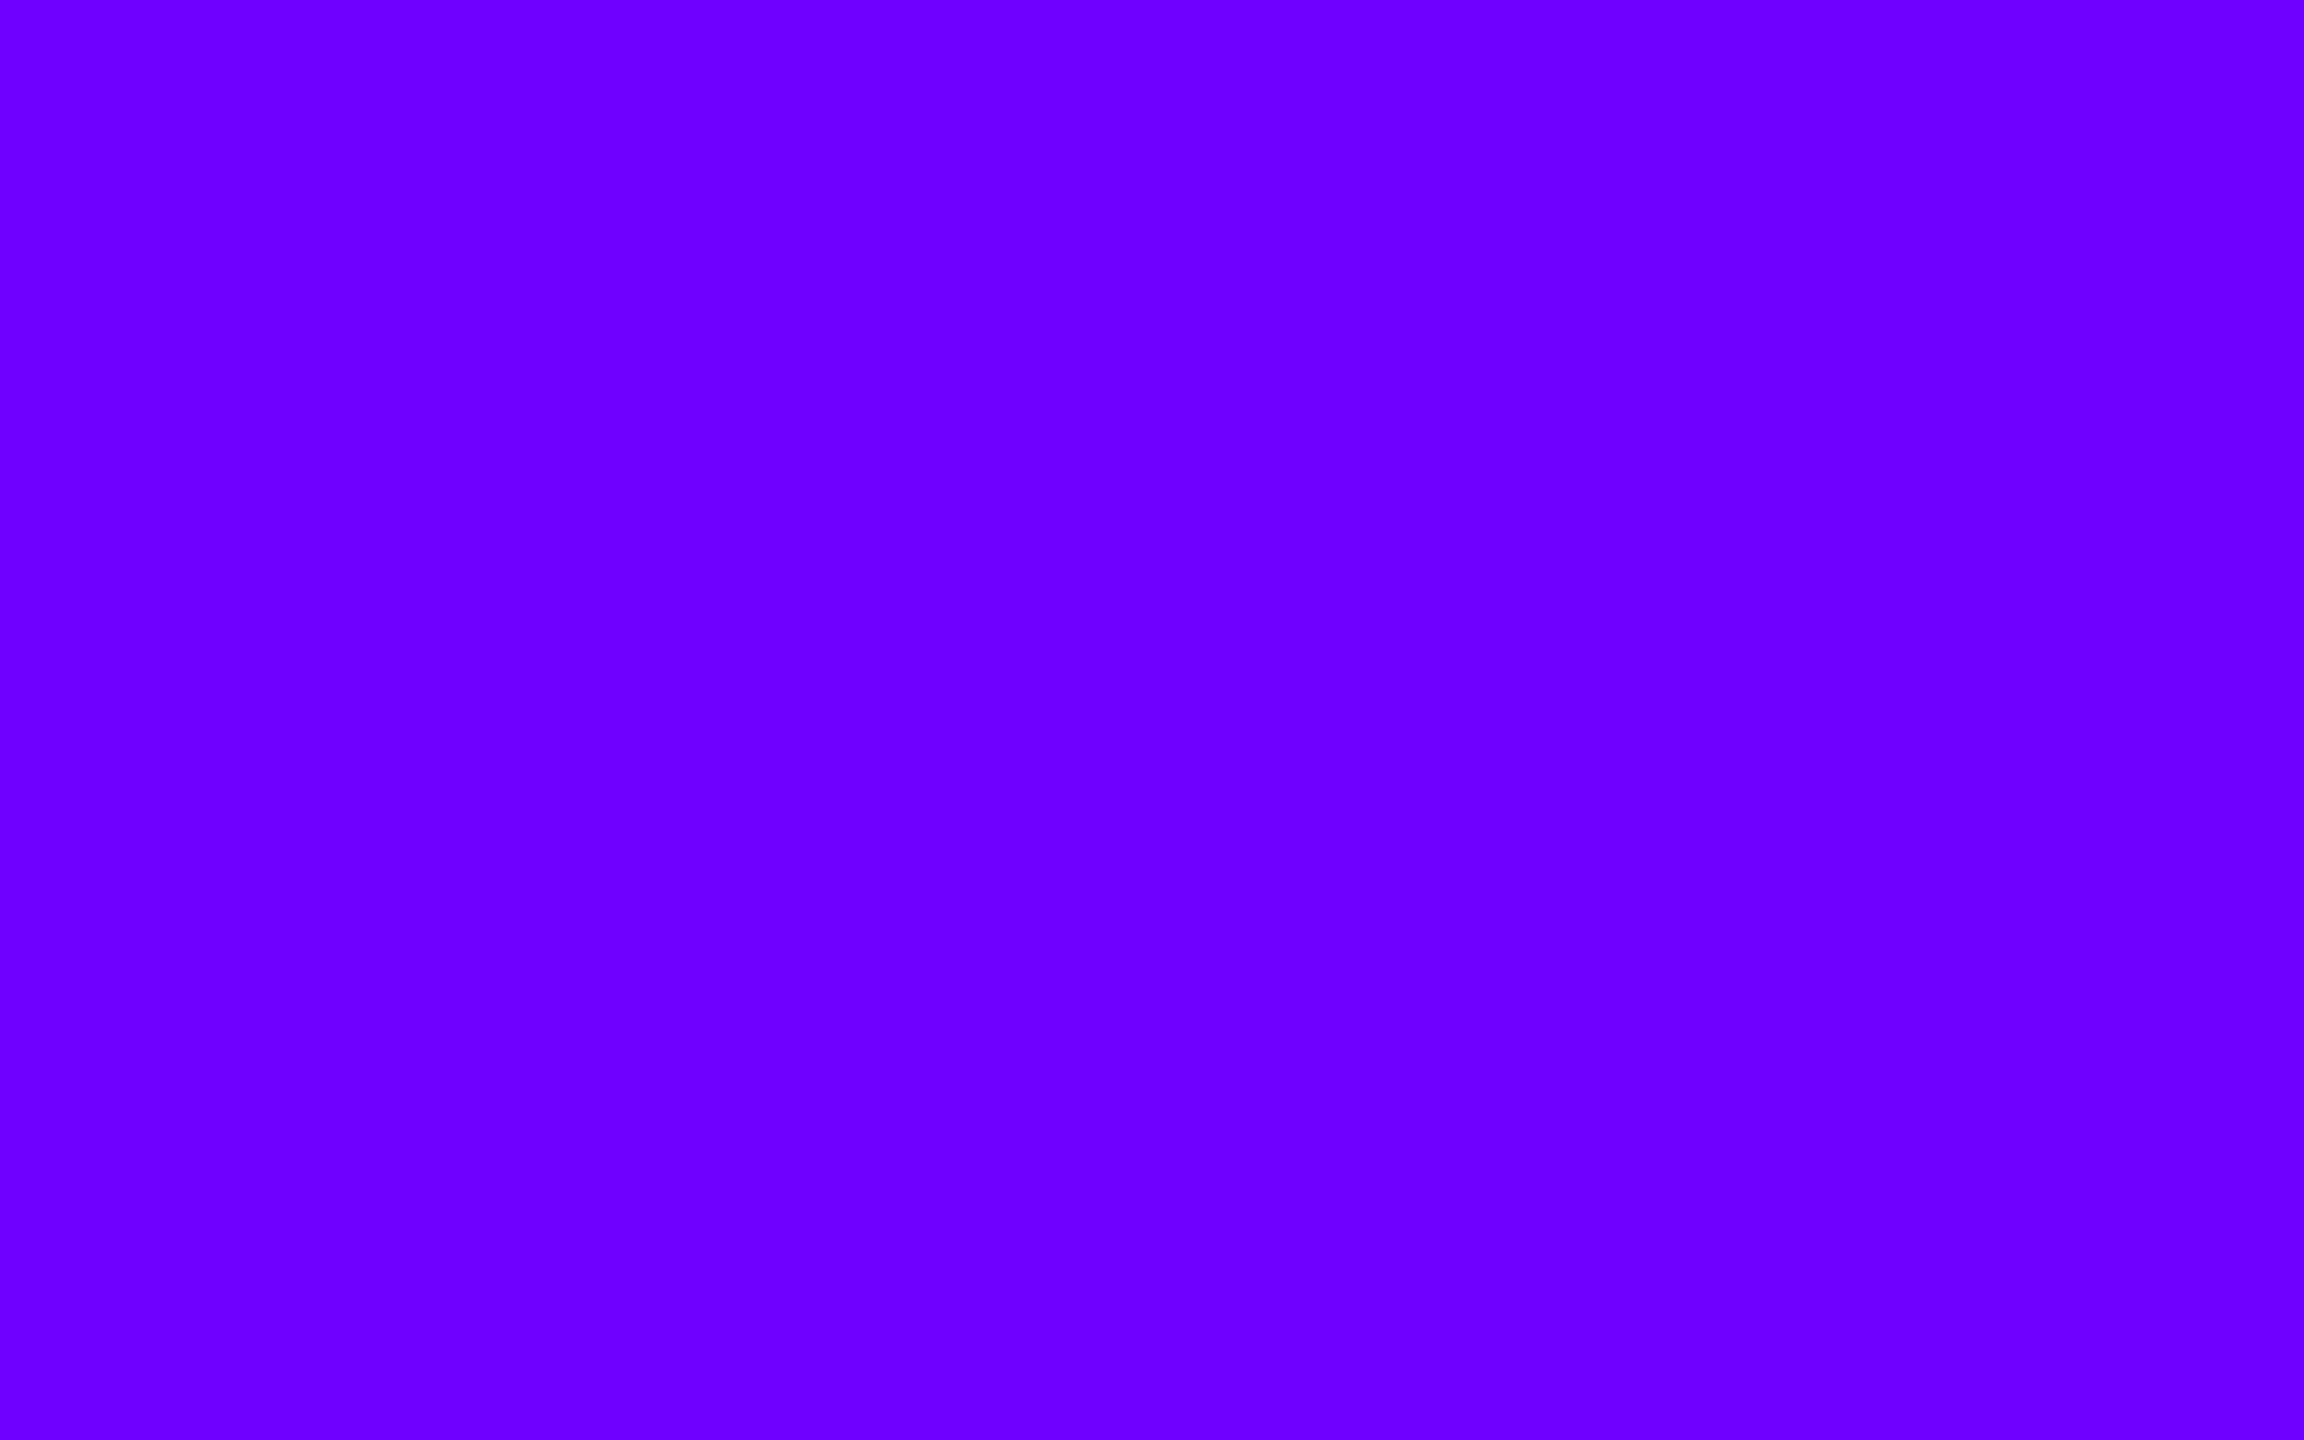 2304x1440 Electric Indigo Solid Color Background